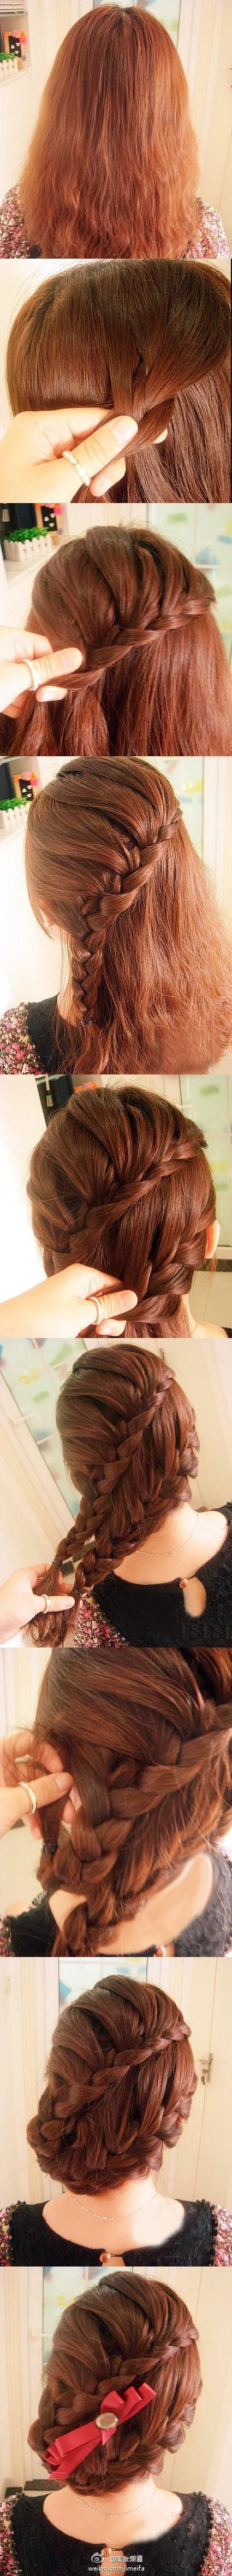 Awesome braided hairstyle guide